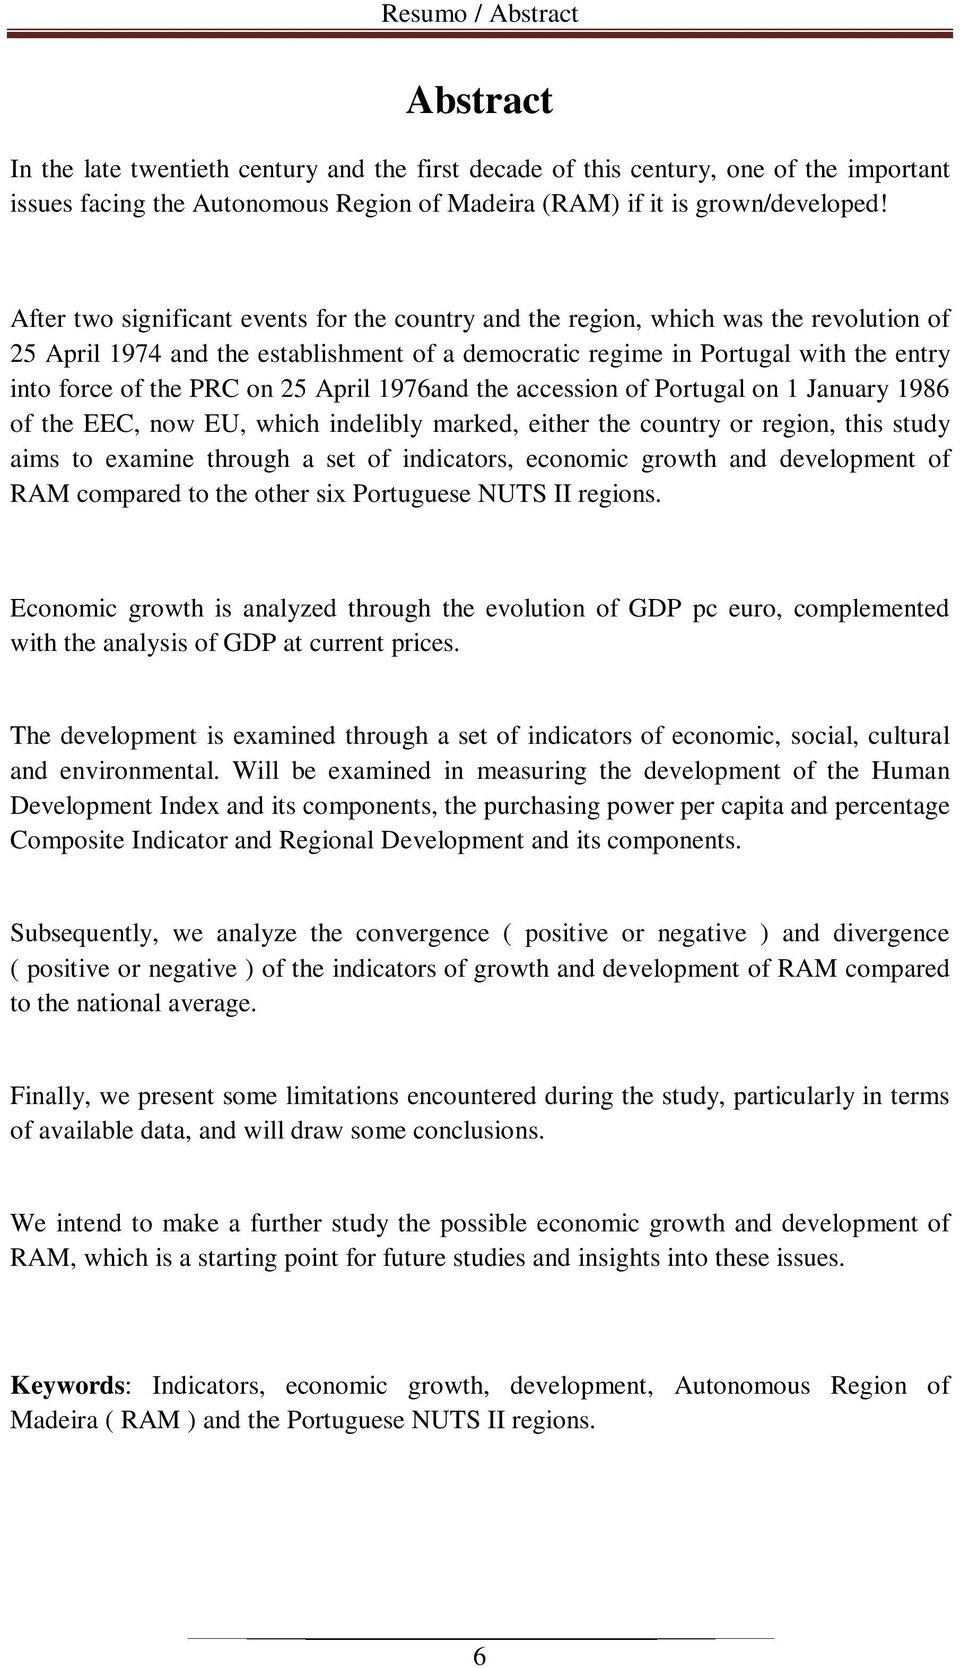 25 April 1976and the accession of Portugal on 1 January 1986 of the EEC, now EU, which indelibly marked, either the country or region, this study aims to examine through a set of indicators, economic